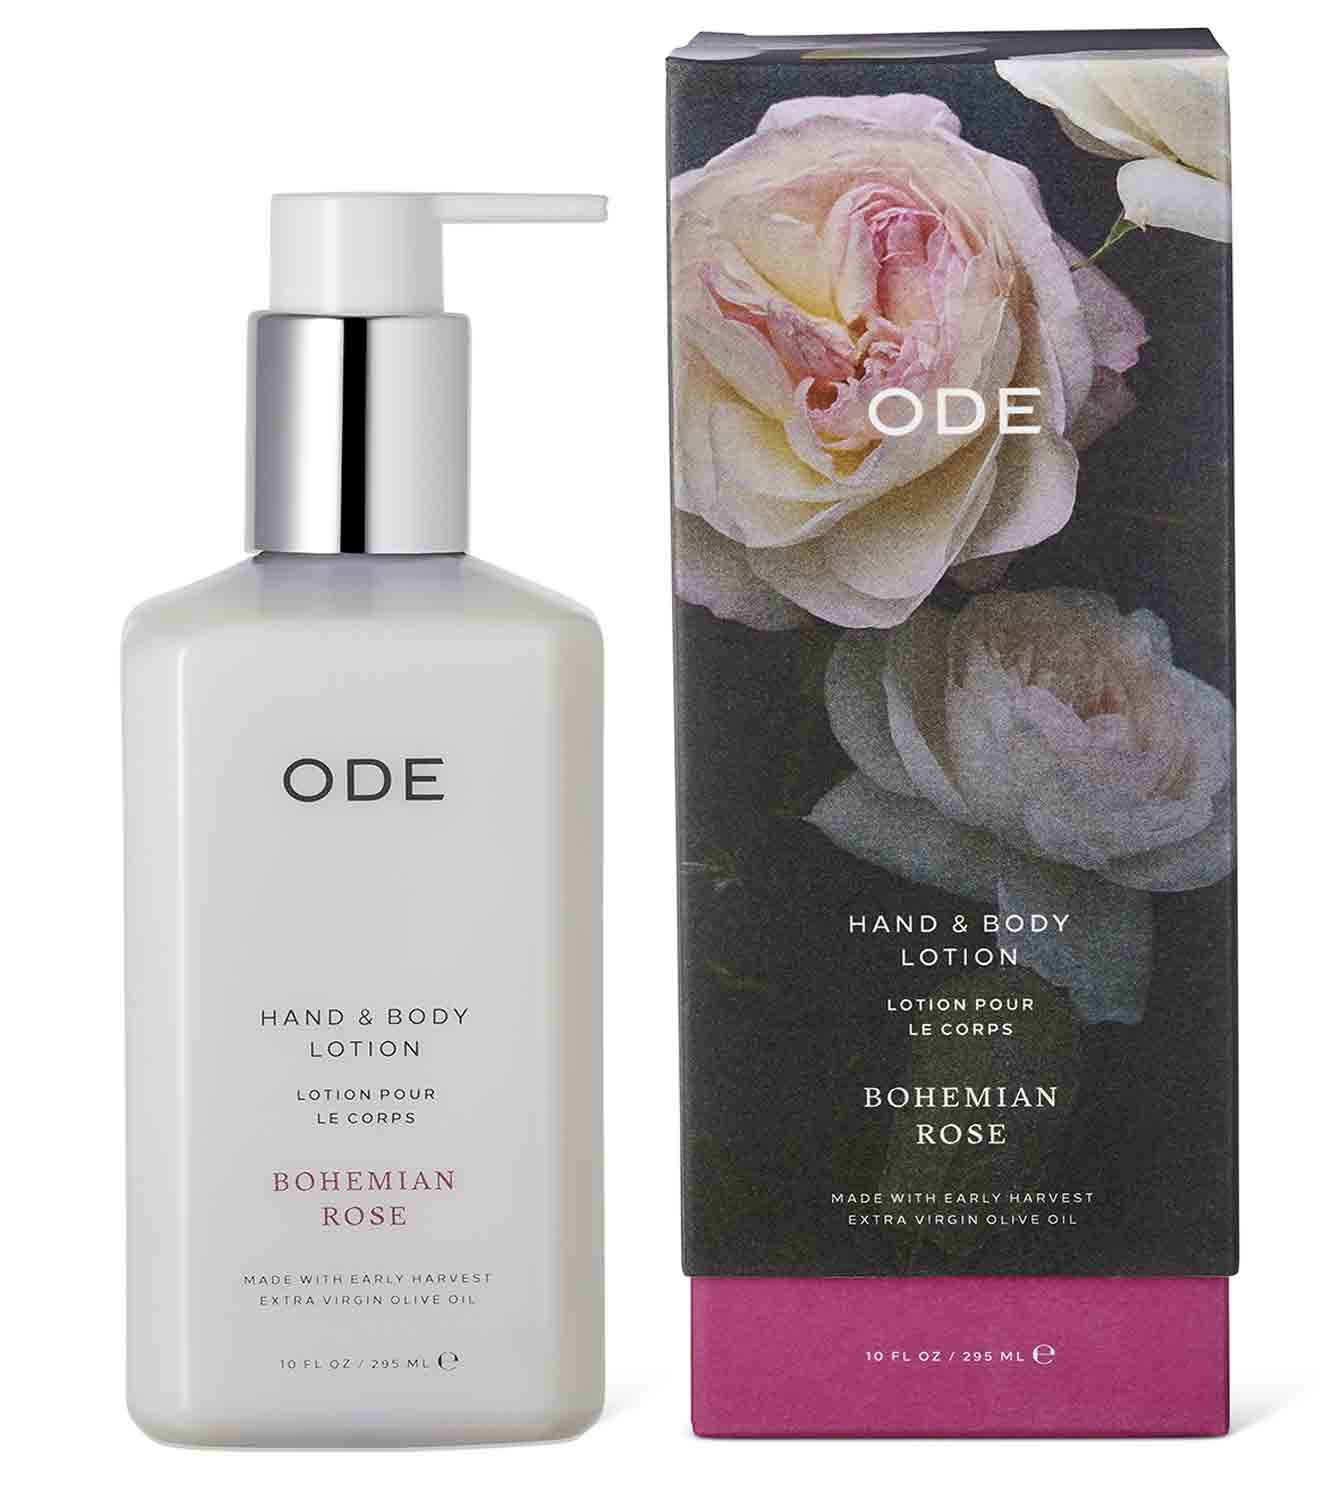 rose body lotion in a bottle